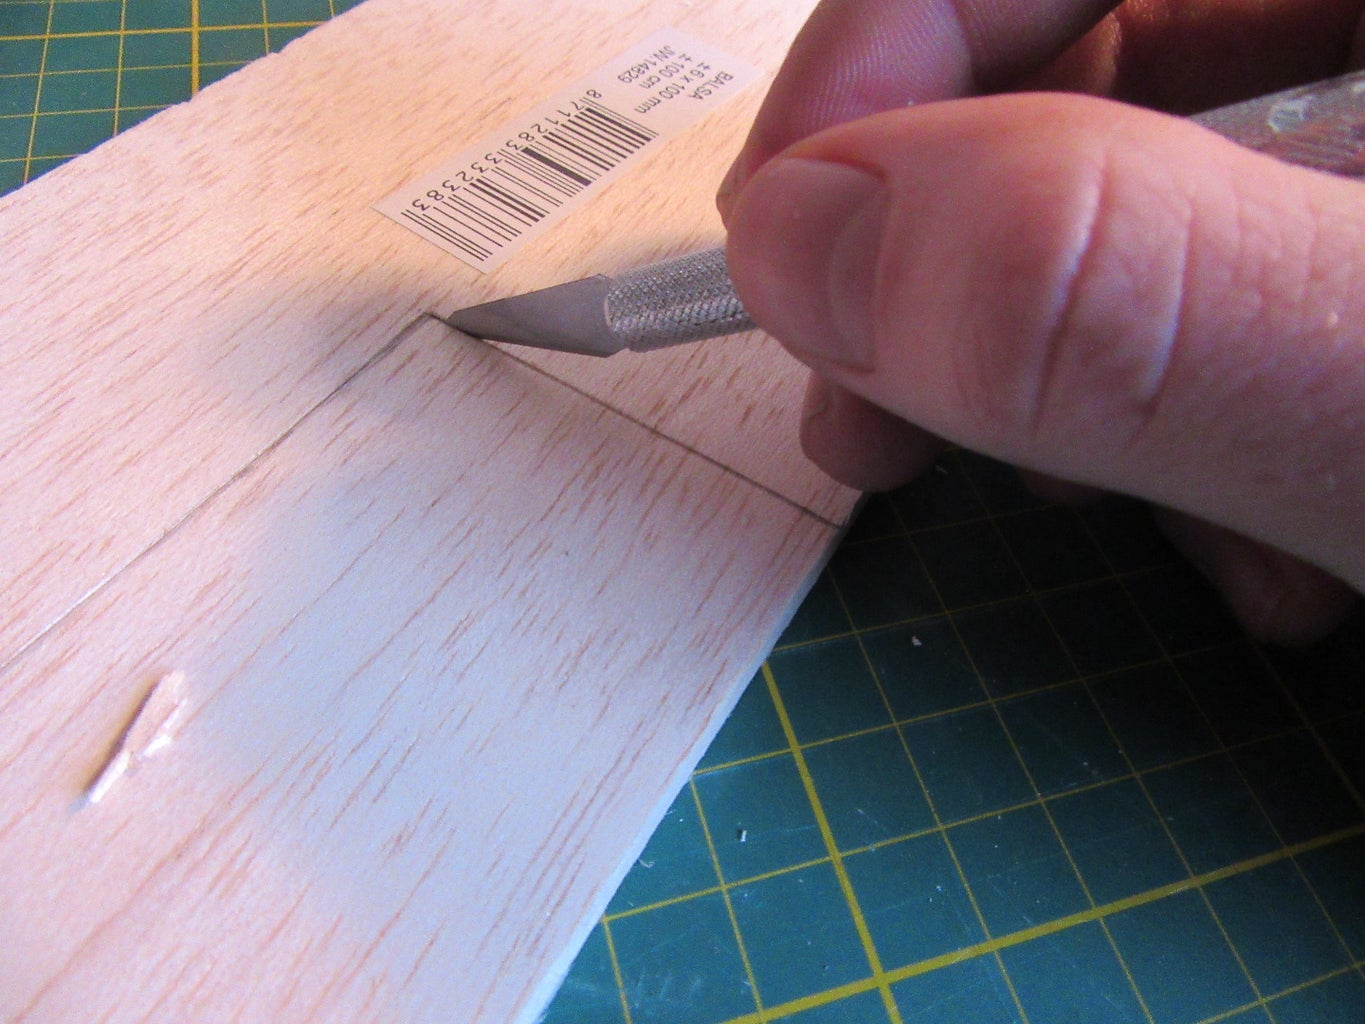 Drawing Plans and Making the First Cuts